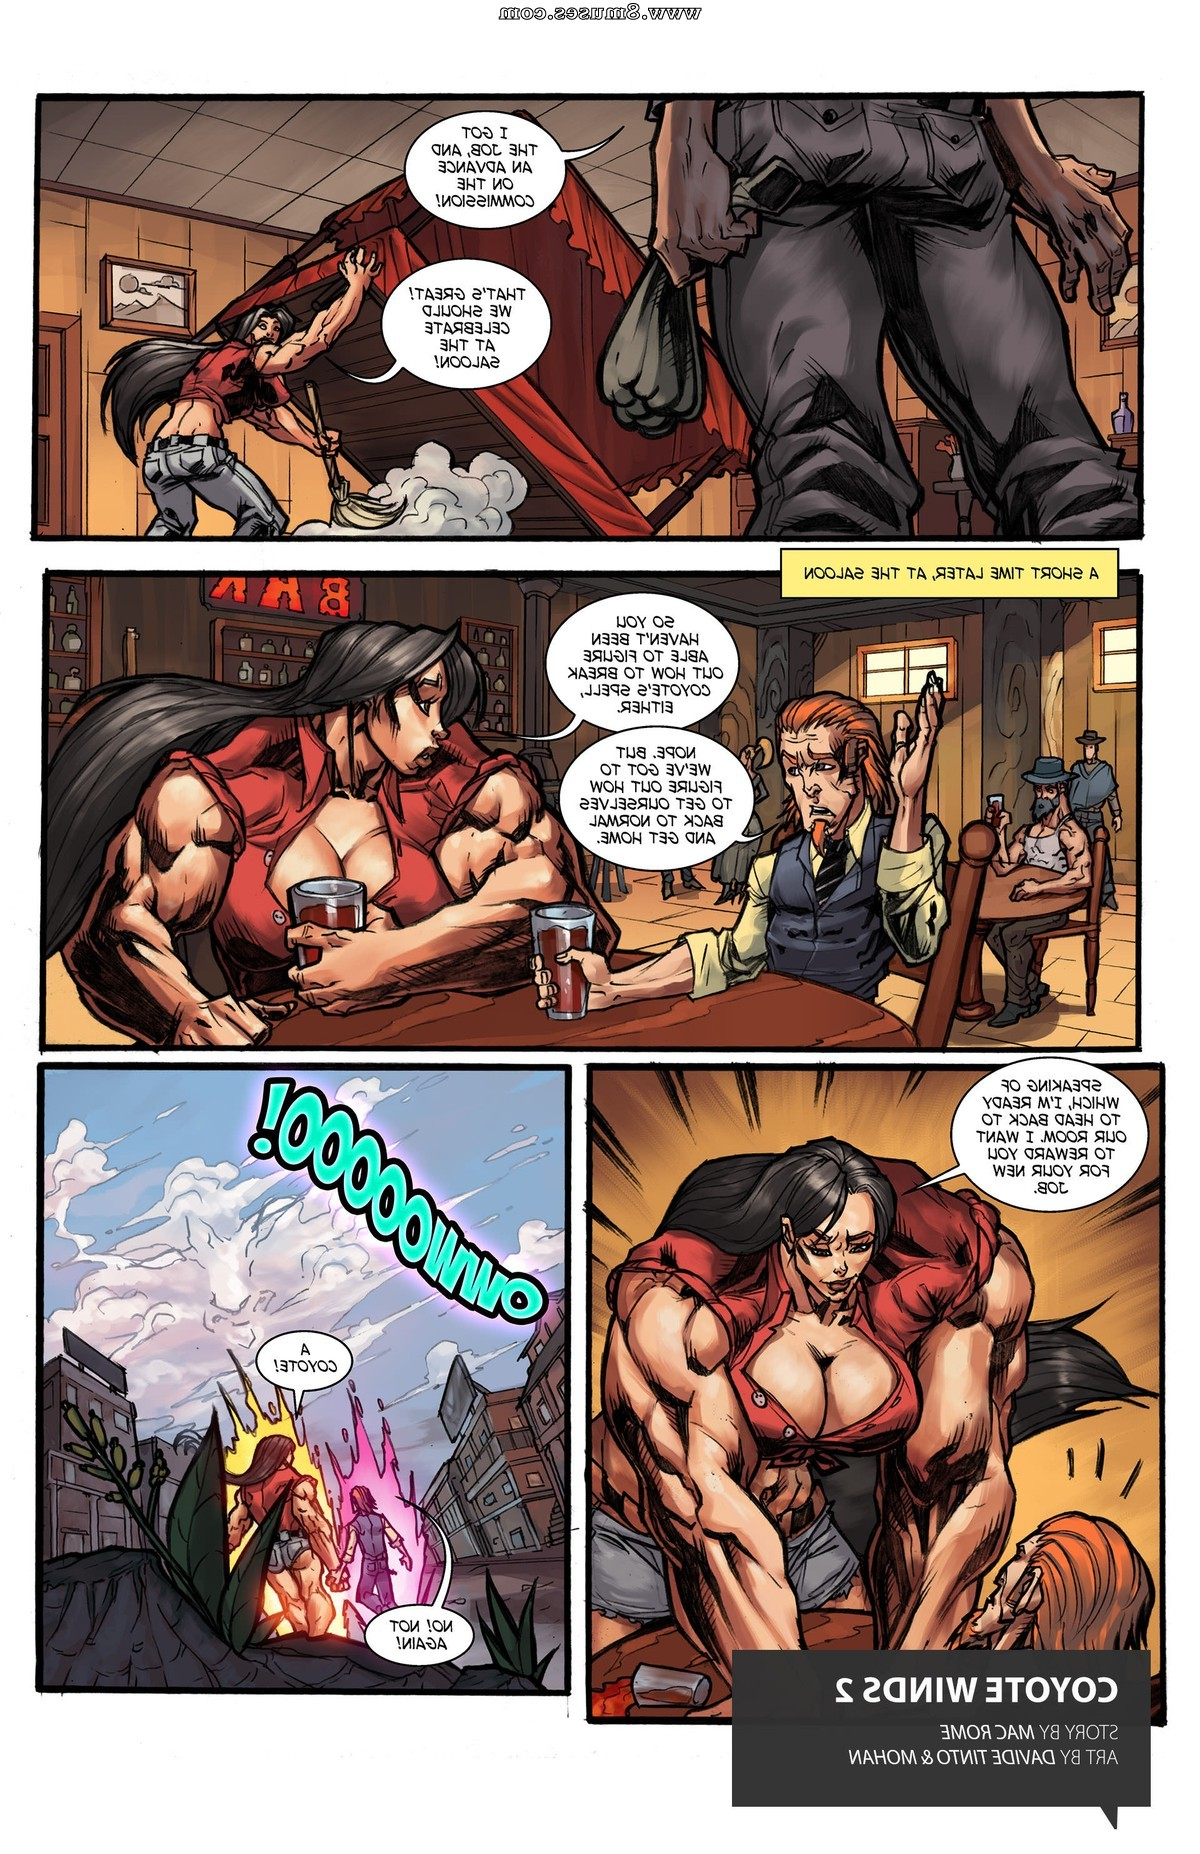 MuscleFan-Comics/Stone-Cold/Issue-1 Stone_Cold_-_Issue_1_28.jpg